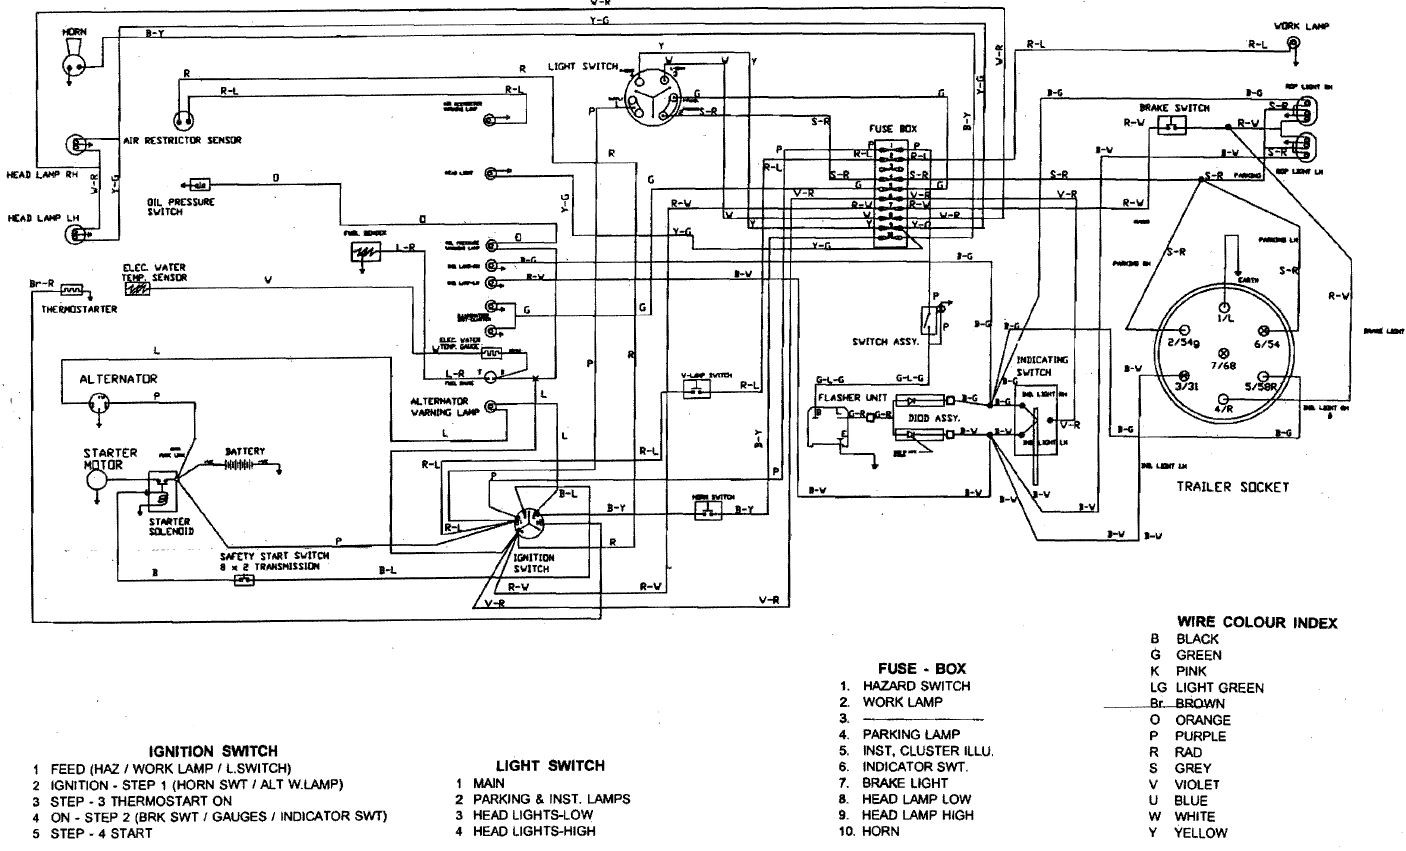 hight resolution of kubota mower ignition switch wiring diagram free scooter ignition switch wiring diagram fork lift ignition switch wiring diagram